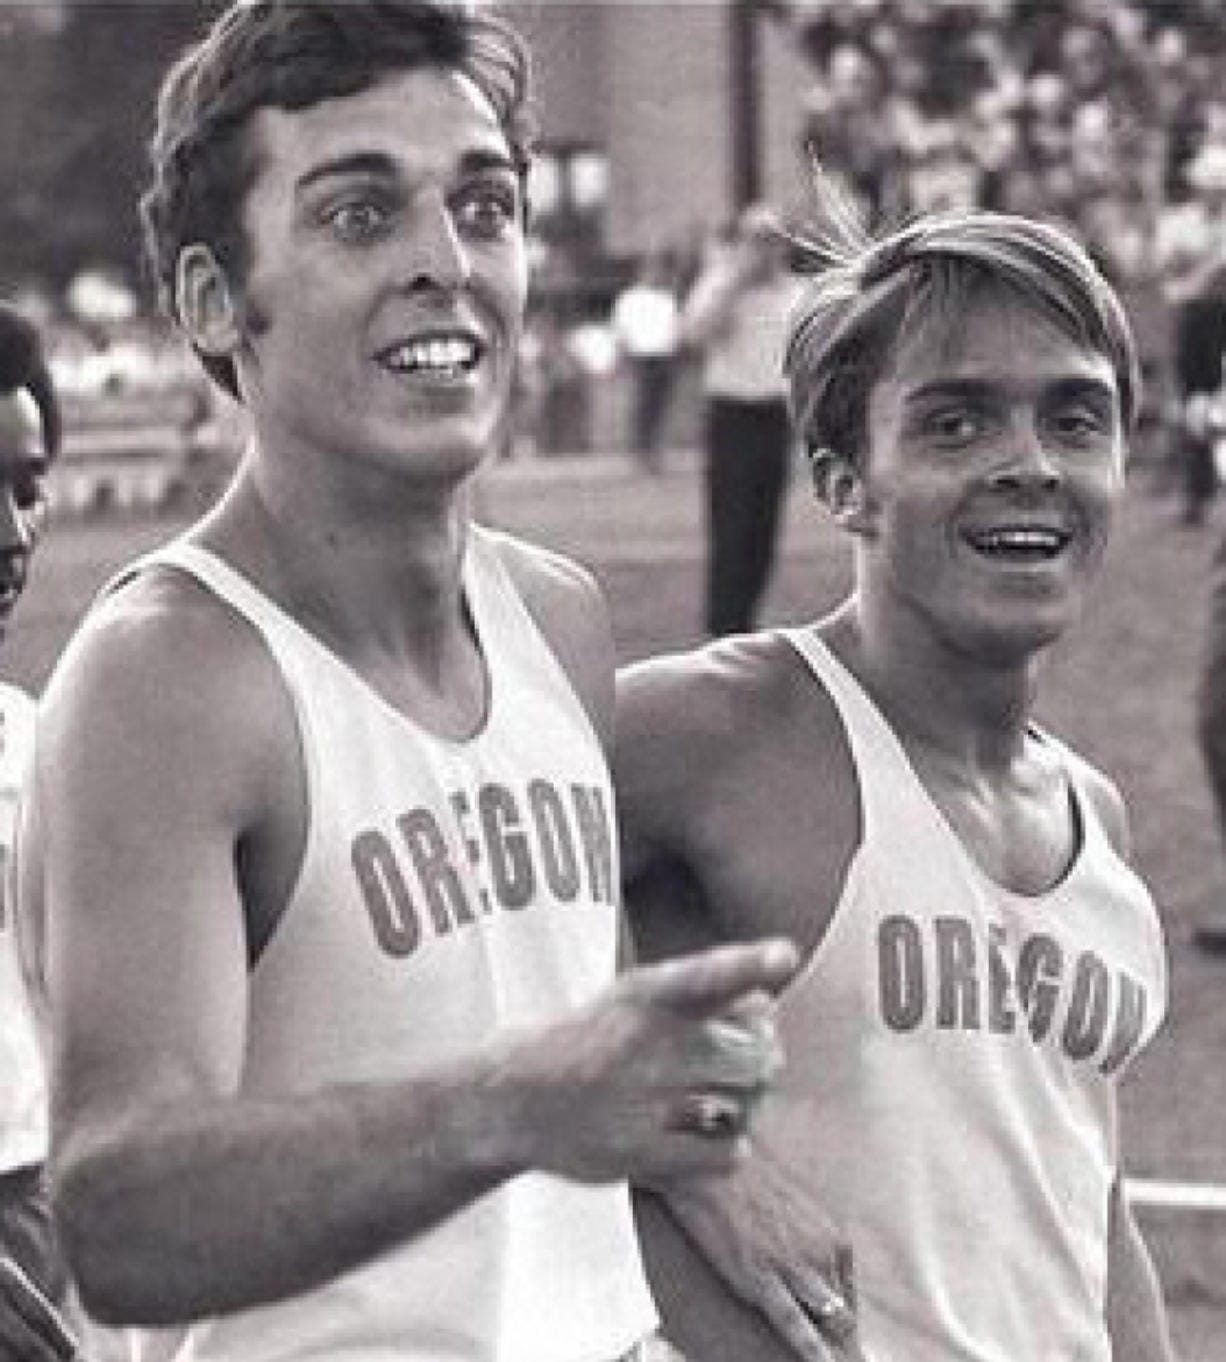 Rosoe Devine, left, with Steve Prefontaine at the Oregon Twilight meet in 1970 at Hayward Field.